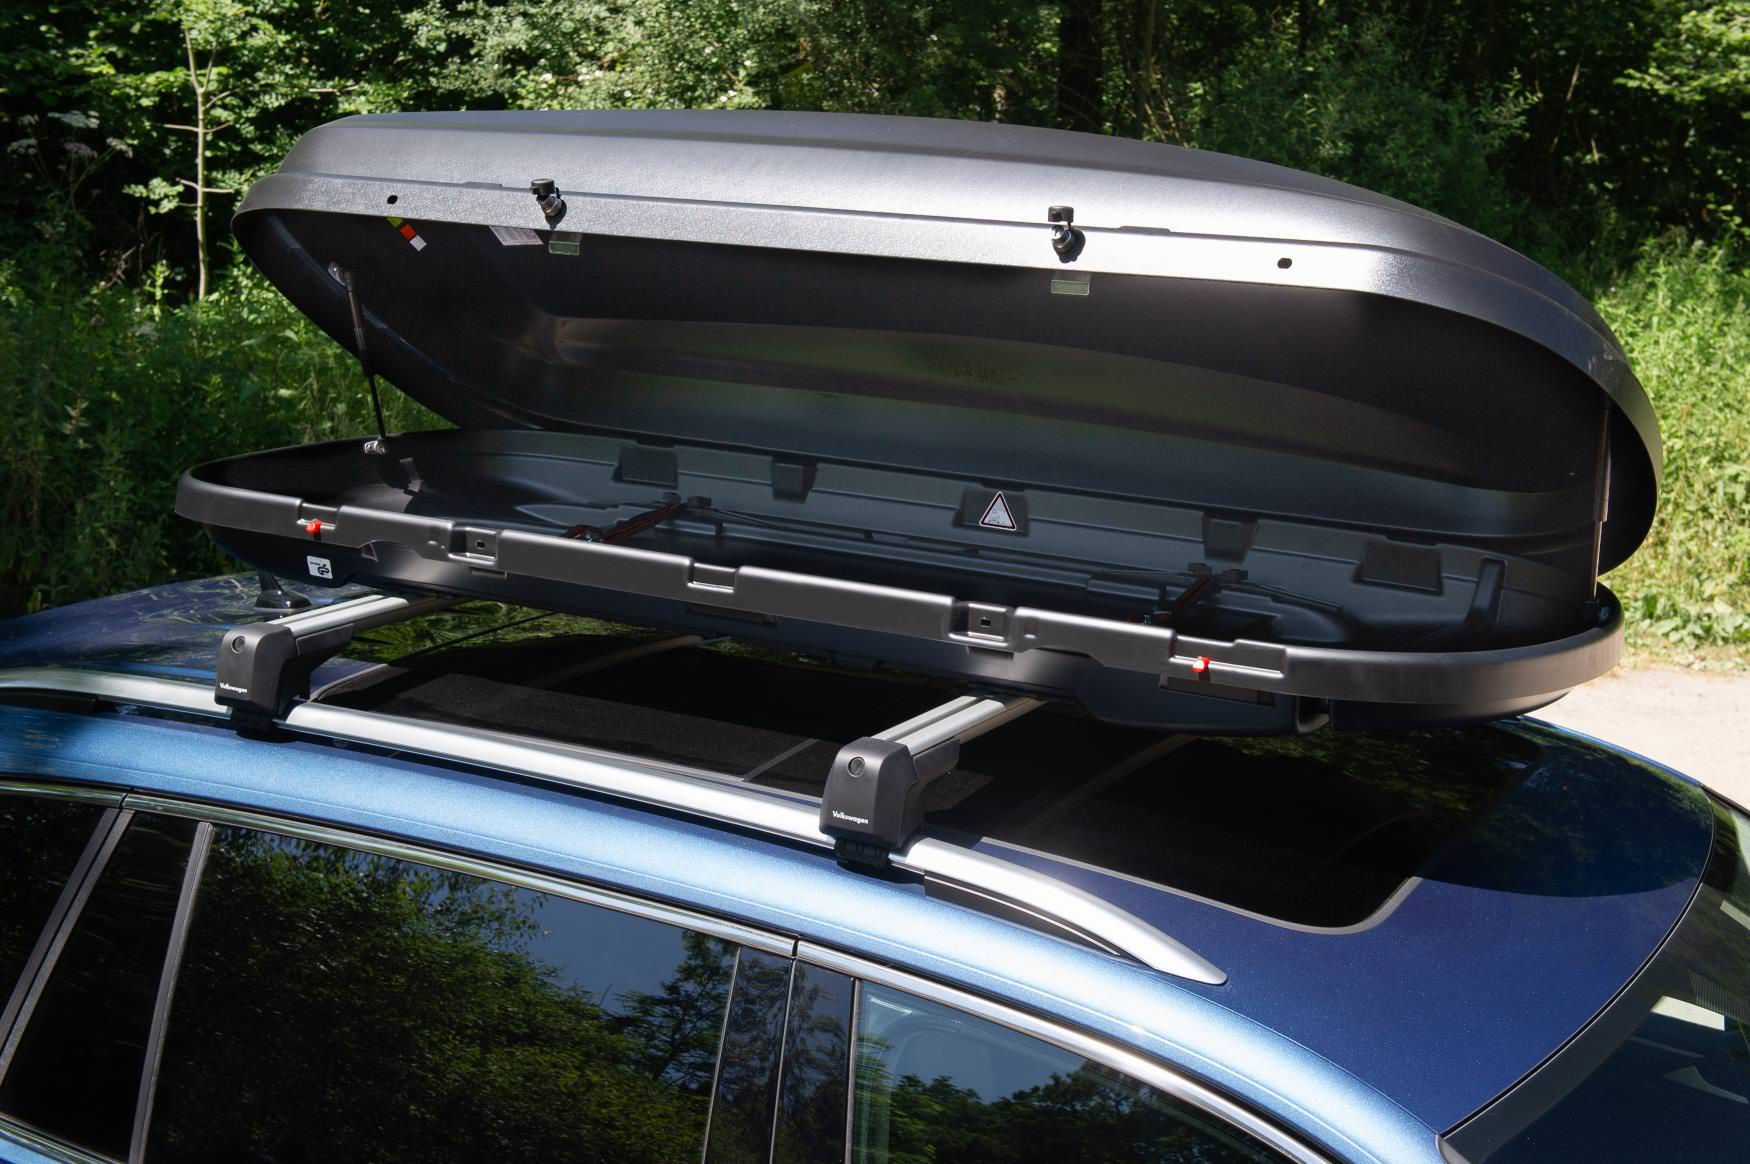 Roof box provides extra storage and can be fitted on most cars